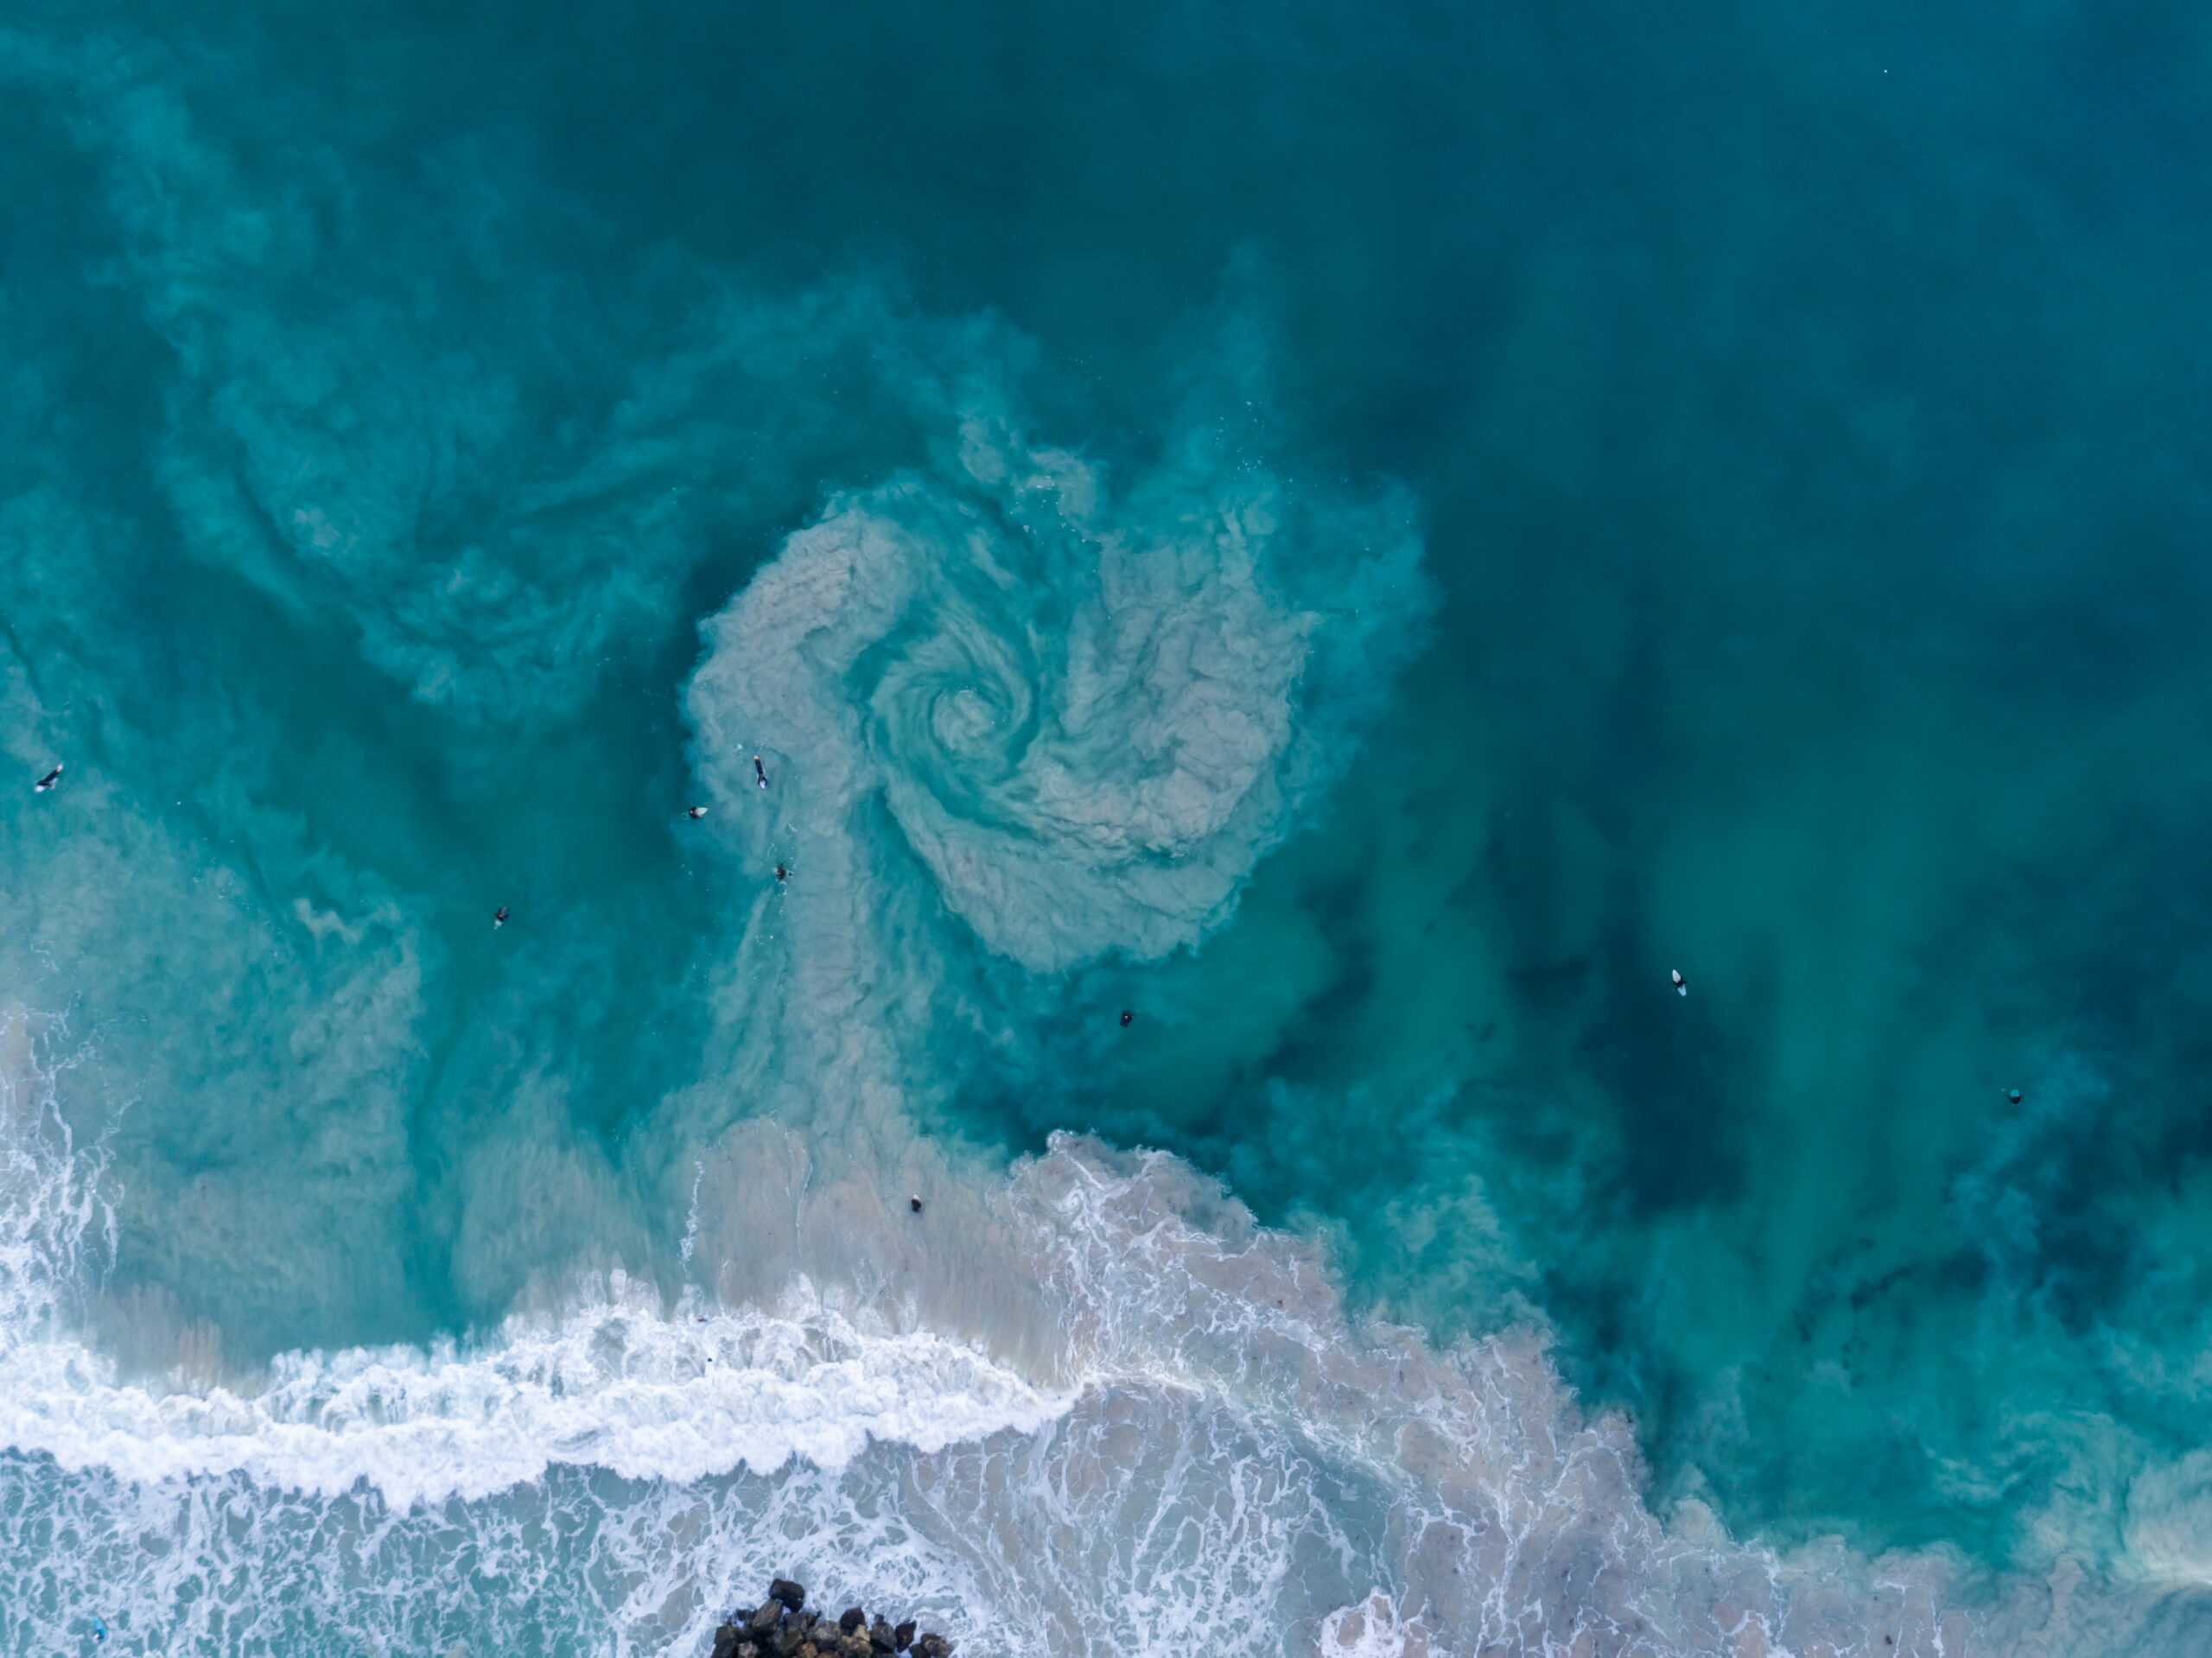 Rip currents occur on surf beaches around the globe. The rocky structure at the bottom of the frame likely contributed to this rip, photographed in Australia and distinguishable by a swirling sediment plume.